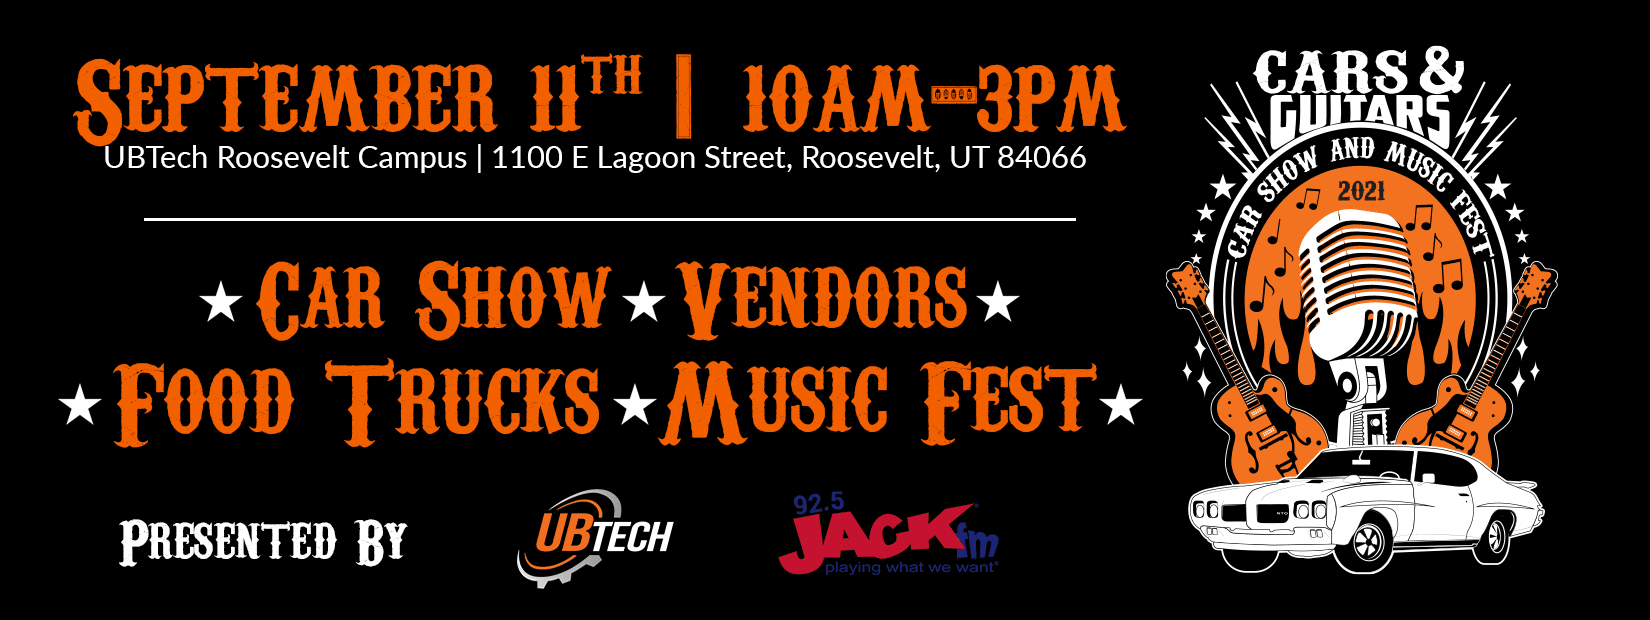 Cars and Guitars, September 11th from 10am to 3pm, Roosevelt Campus, 1100 E Lagoon Street